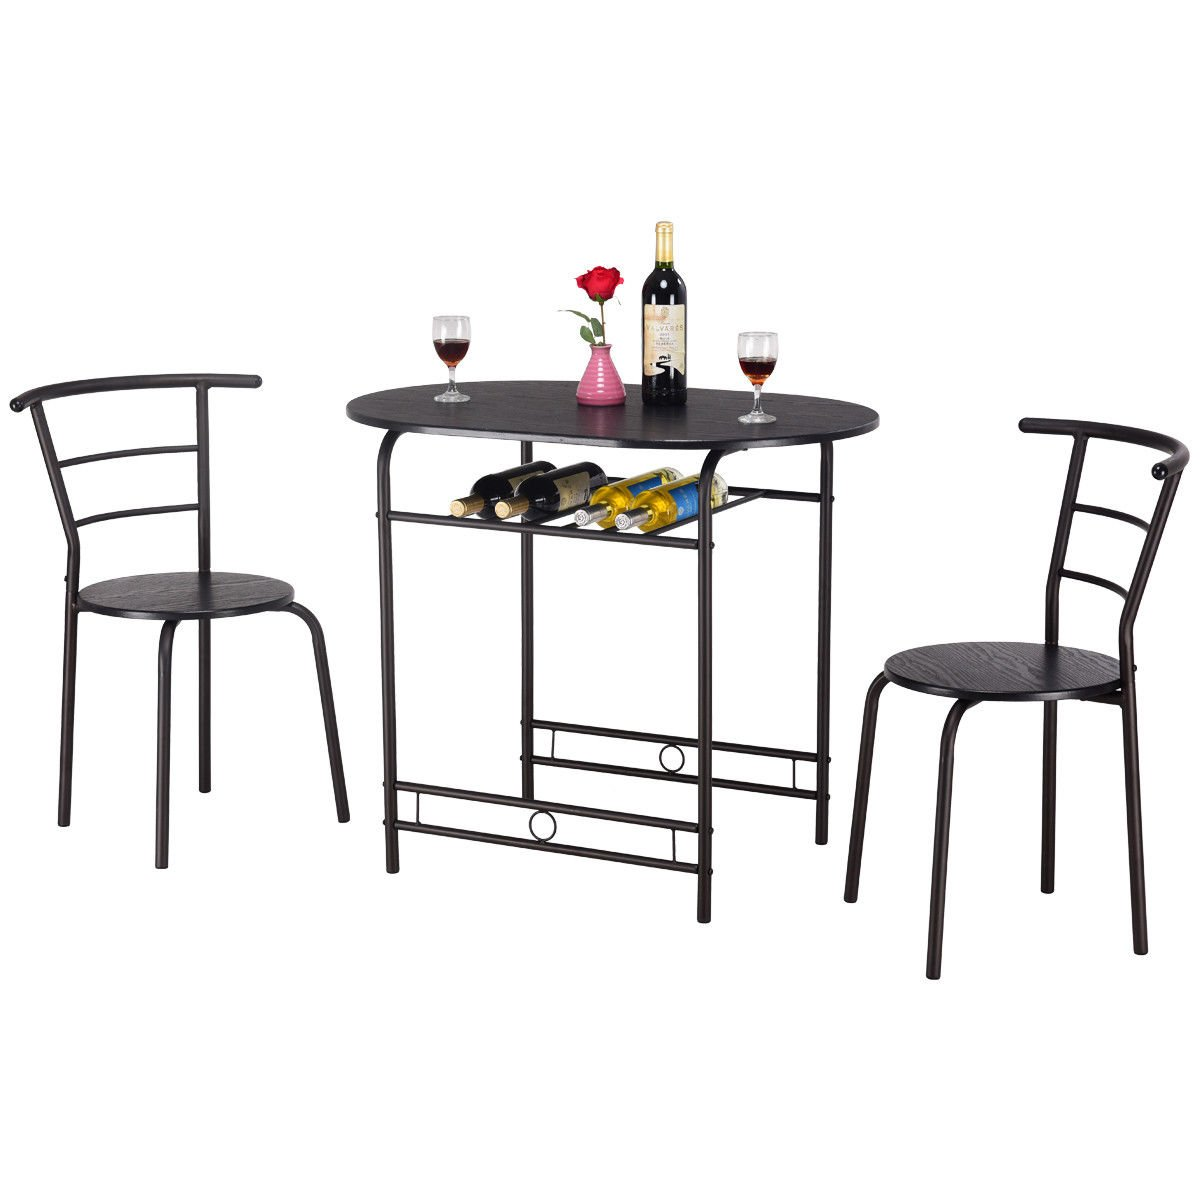 Giantex 3 PCS Dining Table Set w/ 1 Table and 2 Chairs Home Restaurant Breakfast Bistro Pub Kitchen Dining Room Furniture (Black)